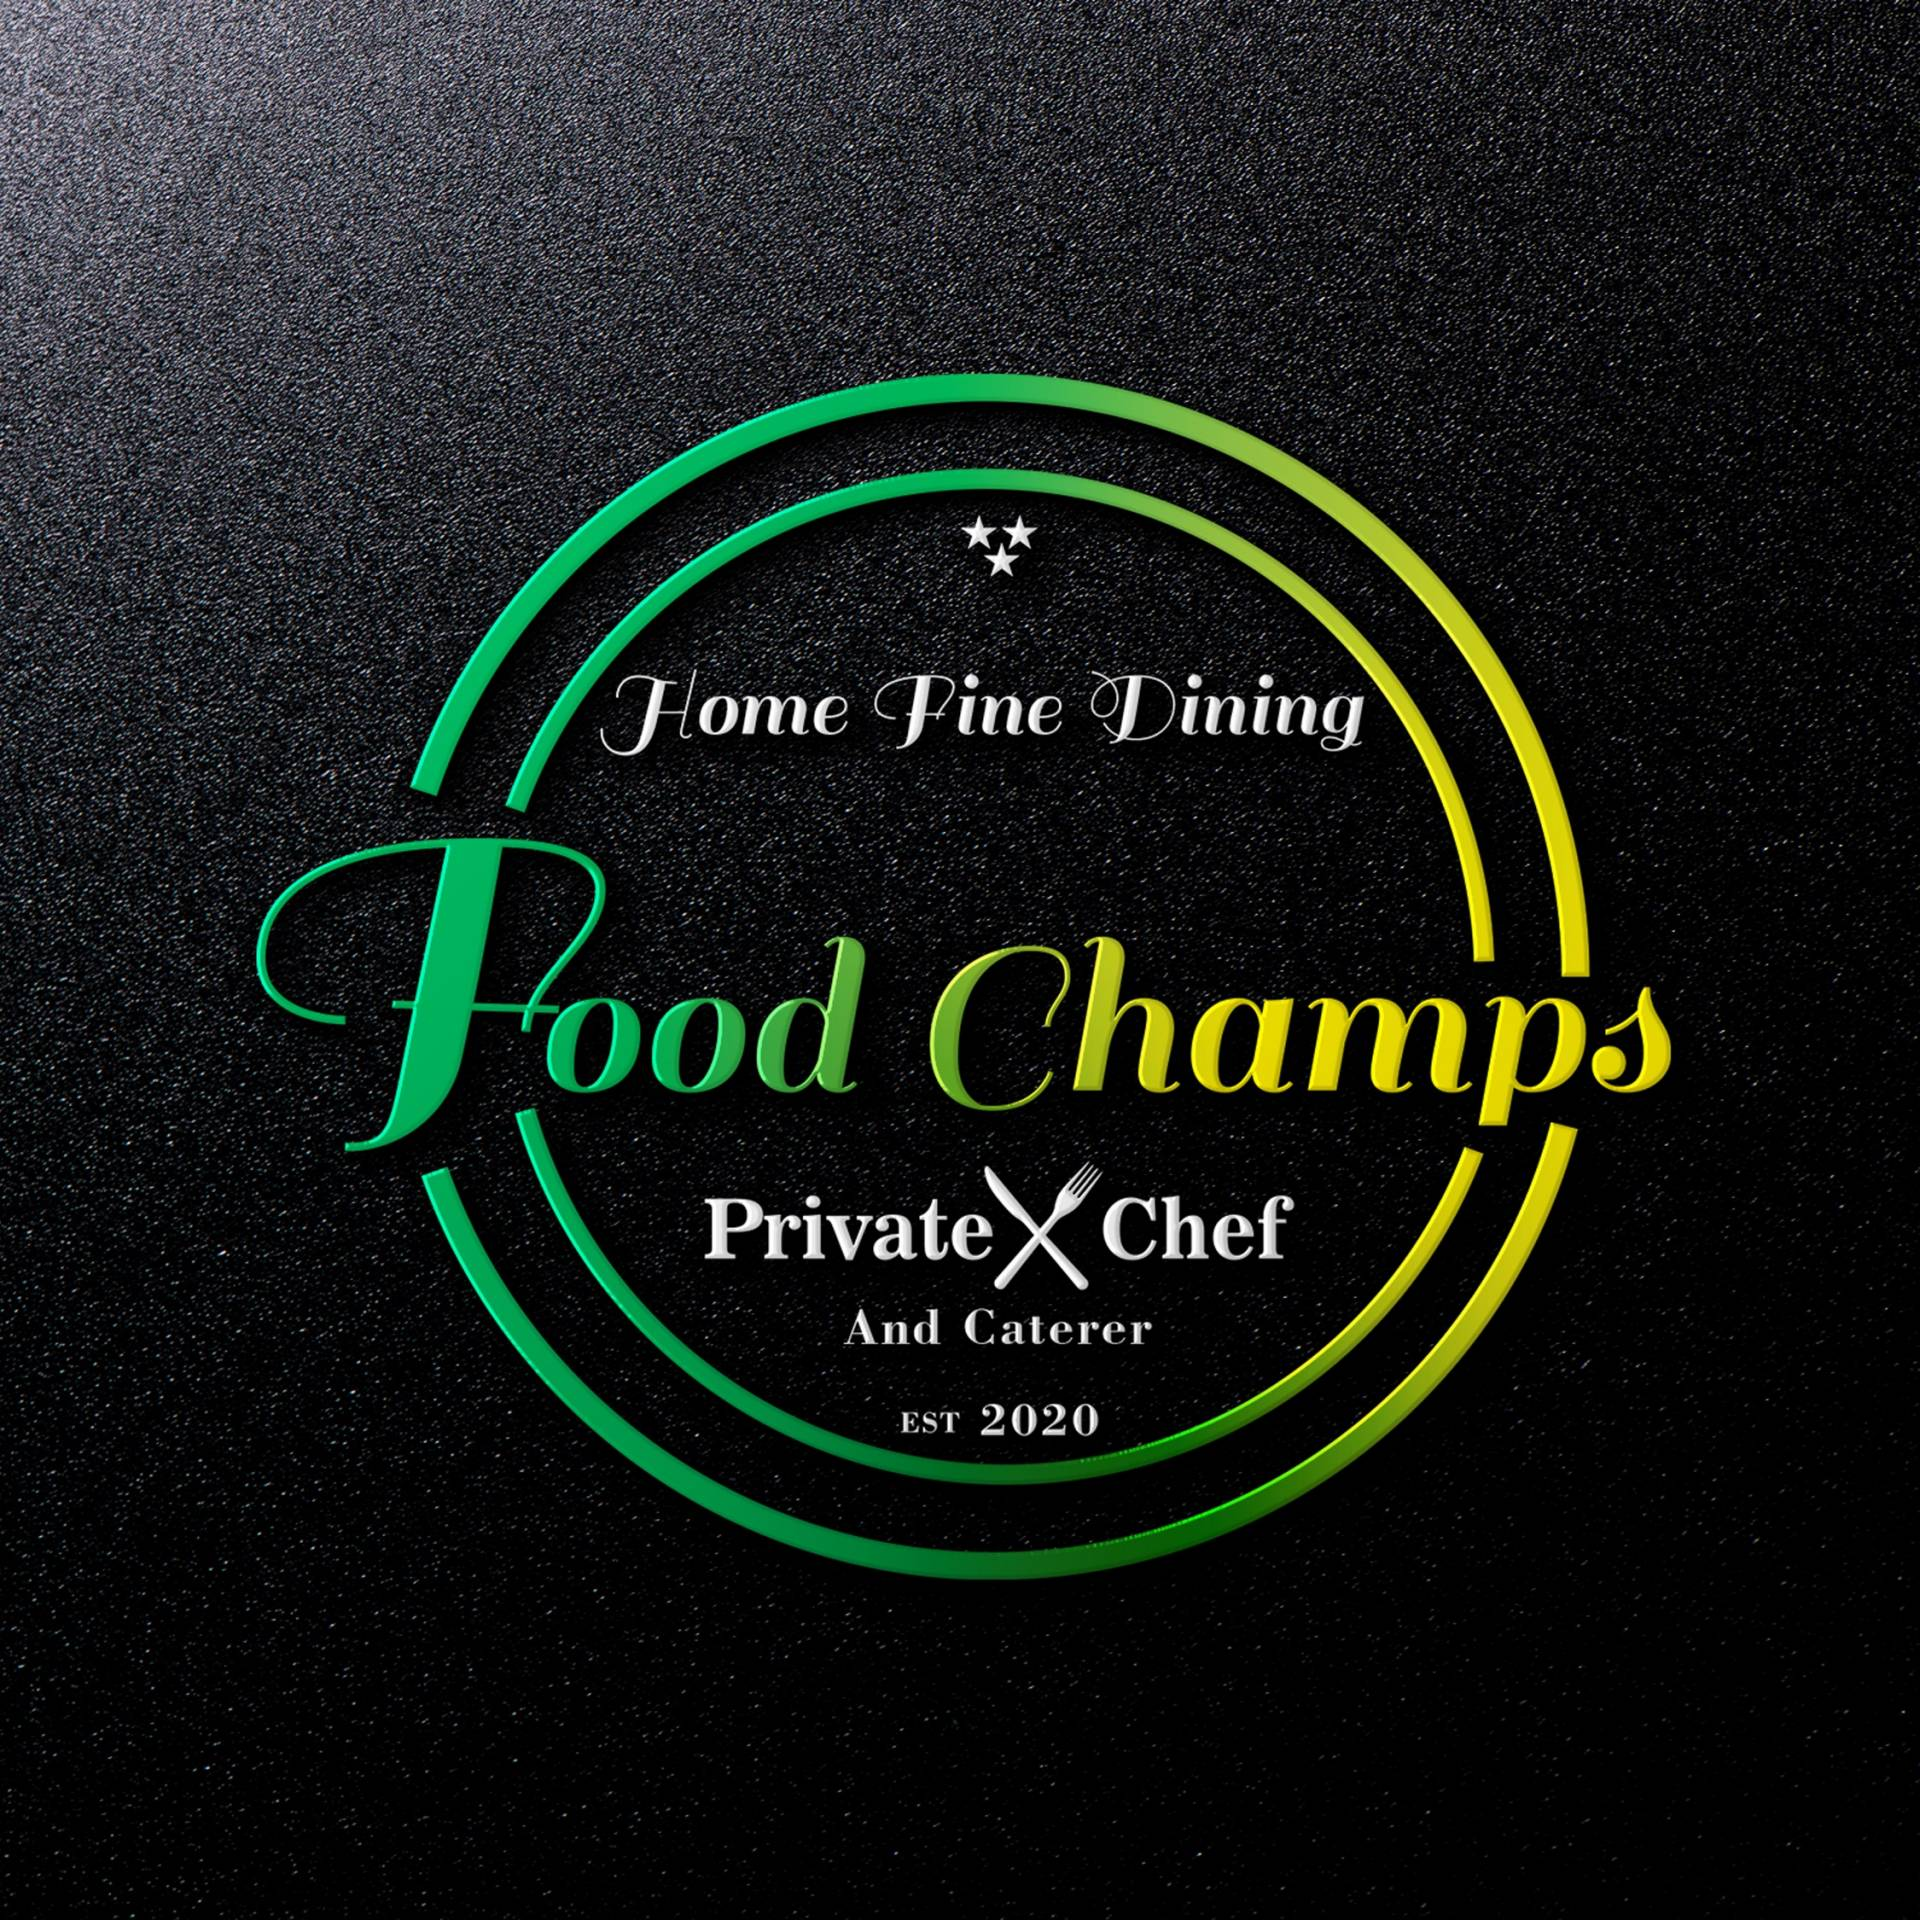 Photo from Food Champs 2020 Food Champs 2020